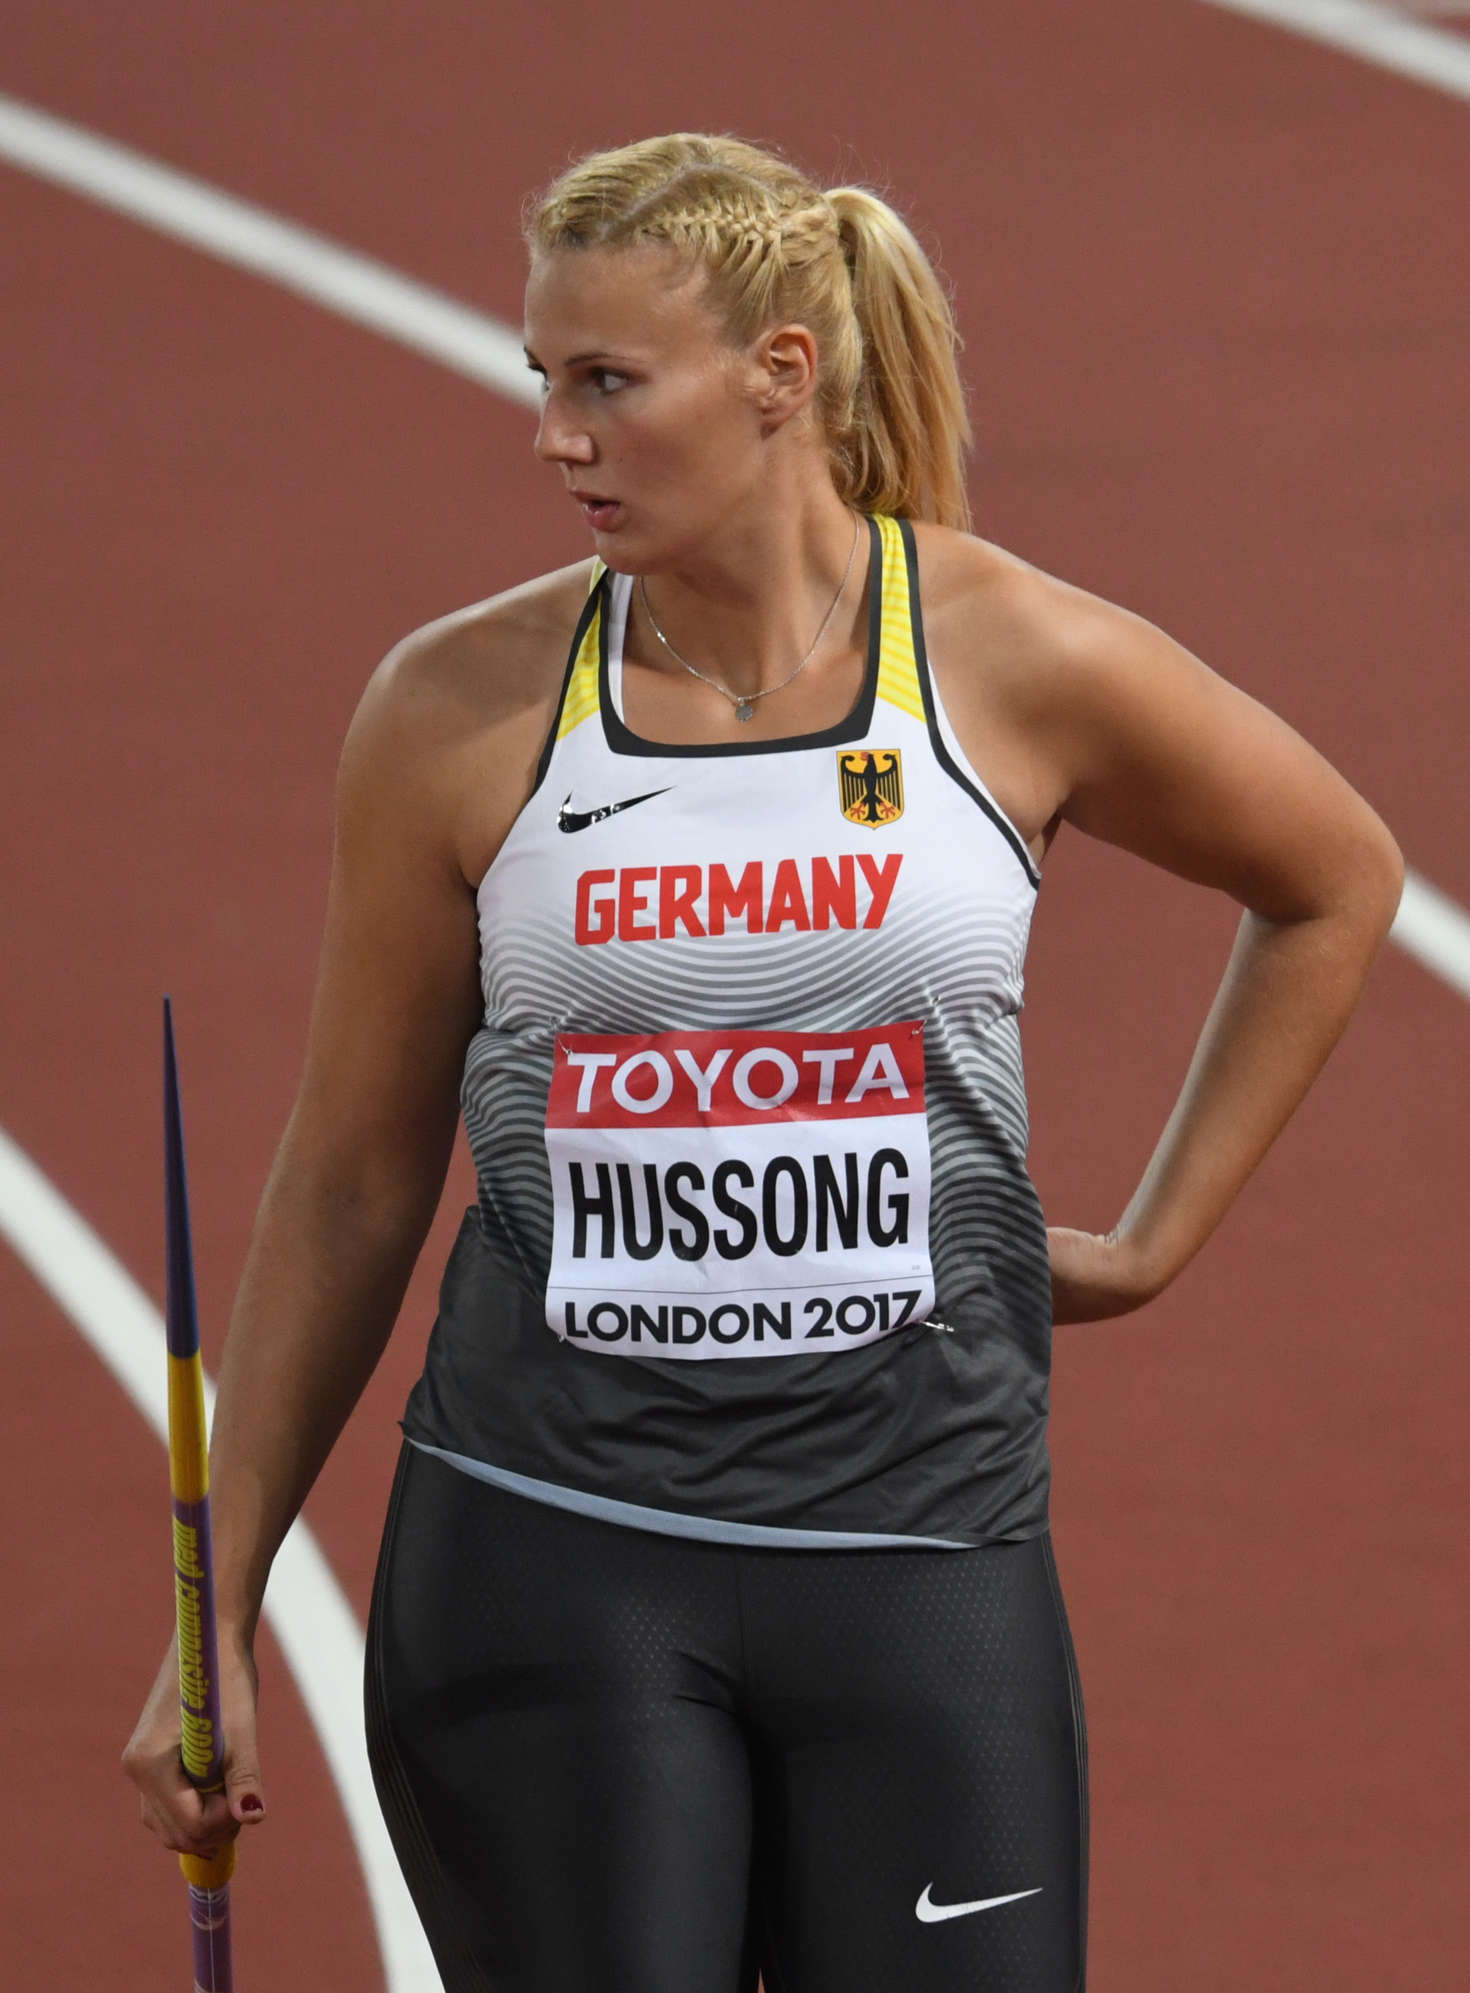 Christin Hussong - Qualifying for the womens javelin at